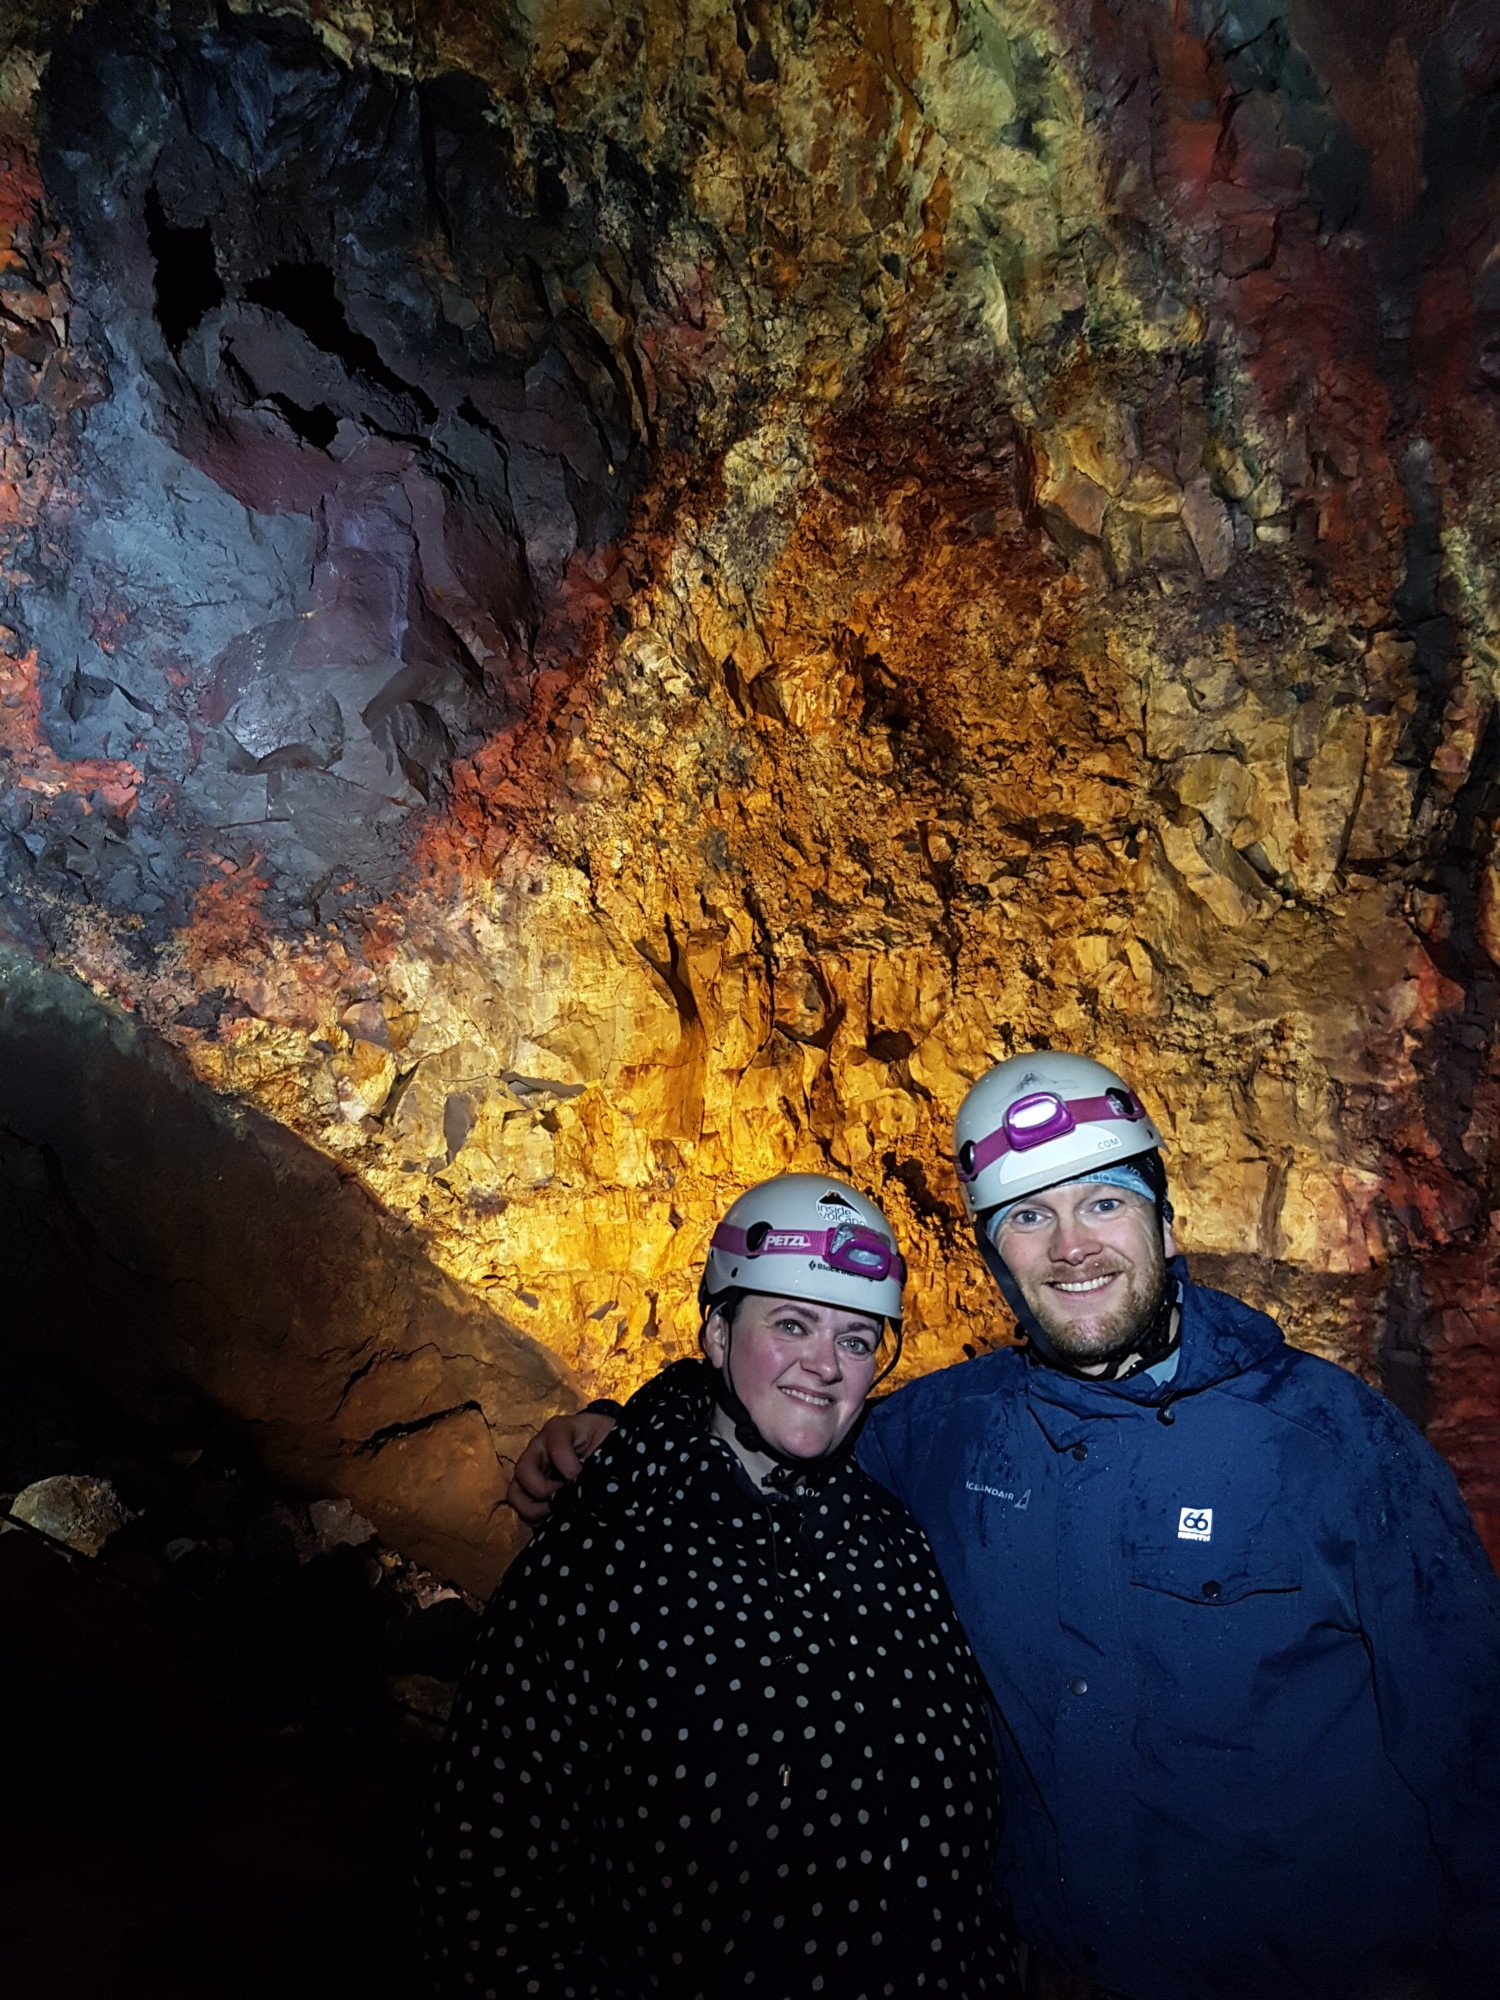 Inside the volcano is definately one of our recommended Iceland tours.